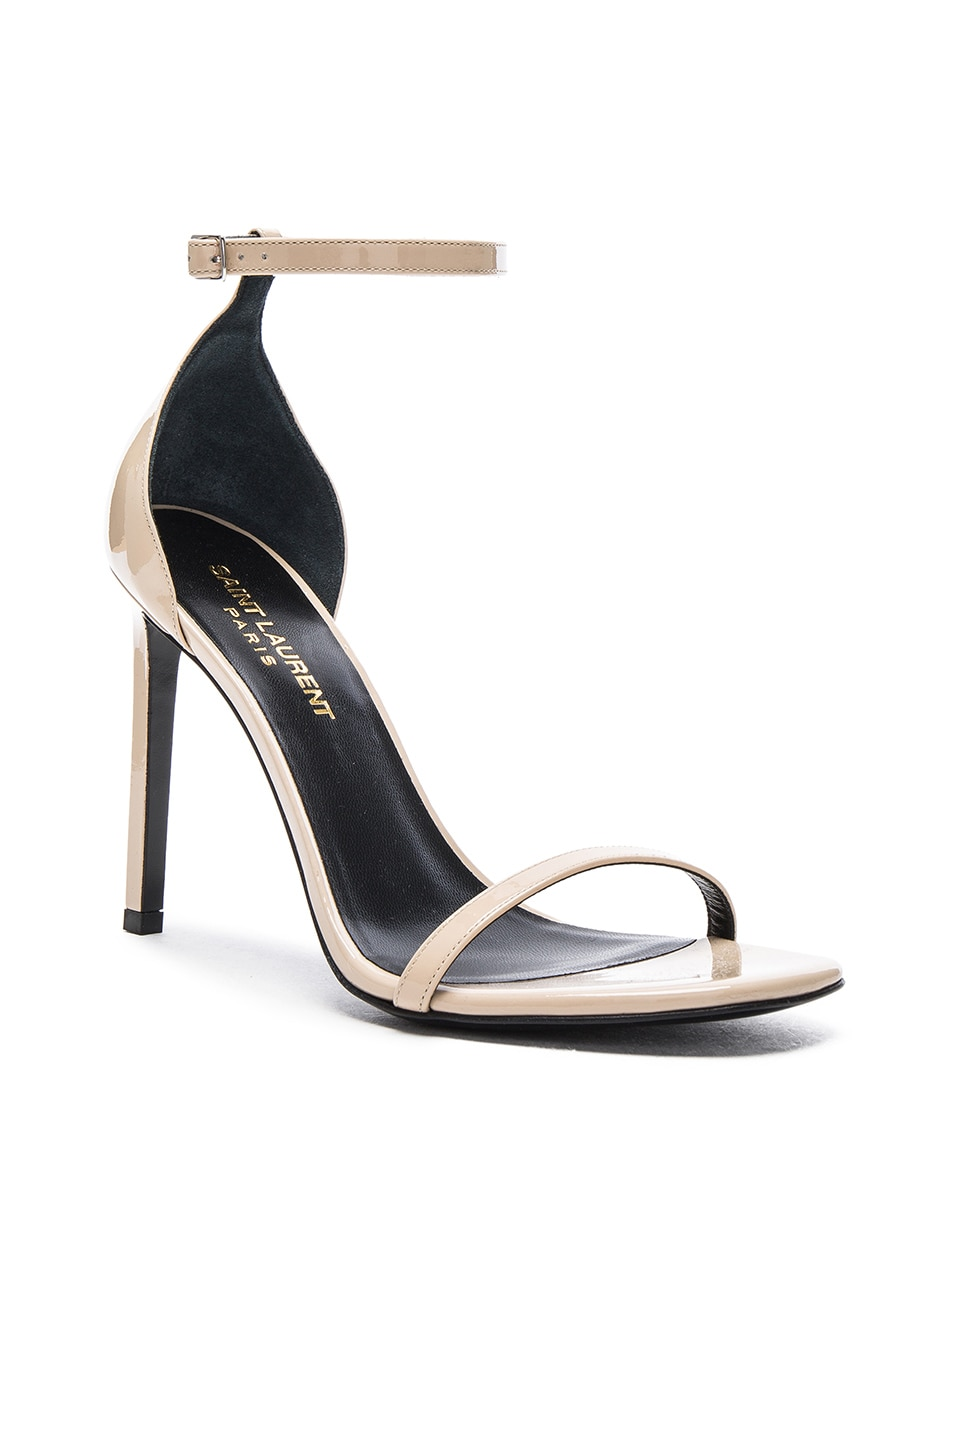 Image 2 of Saint Laurent Patent Leather Jane Sandals in Poudre